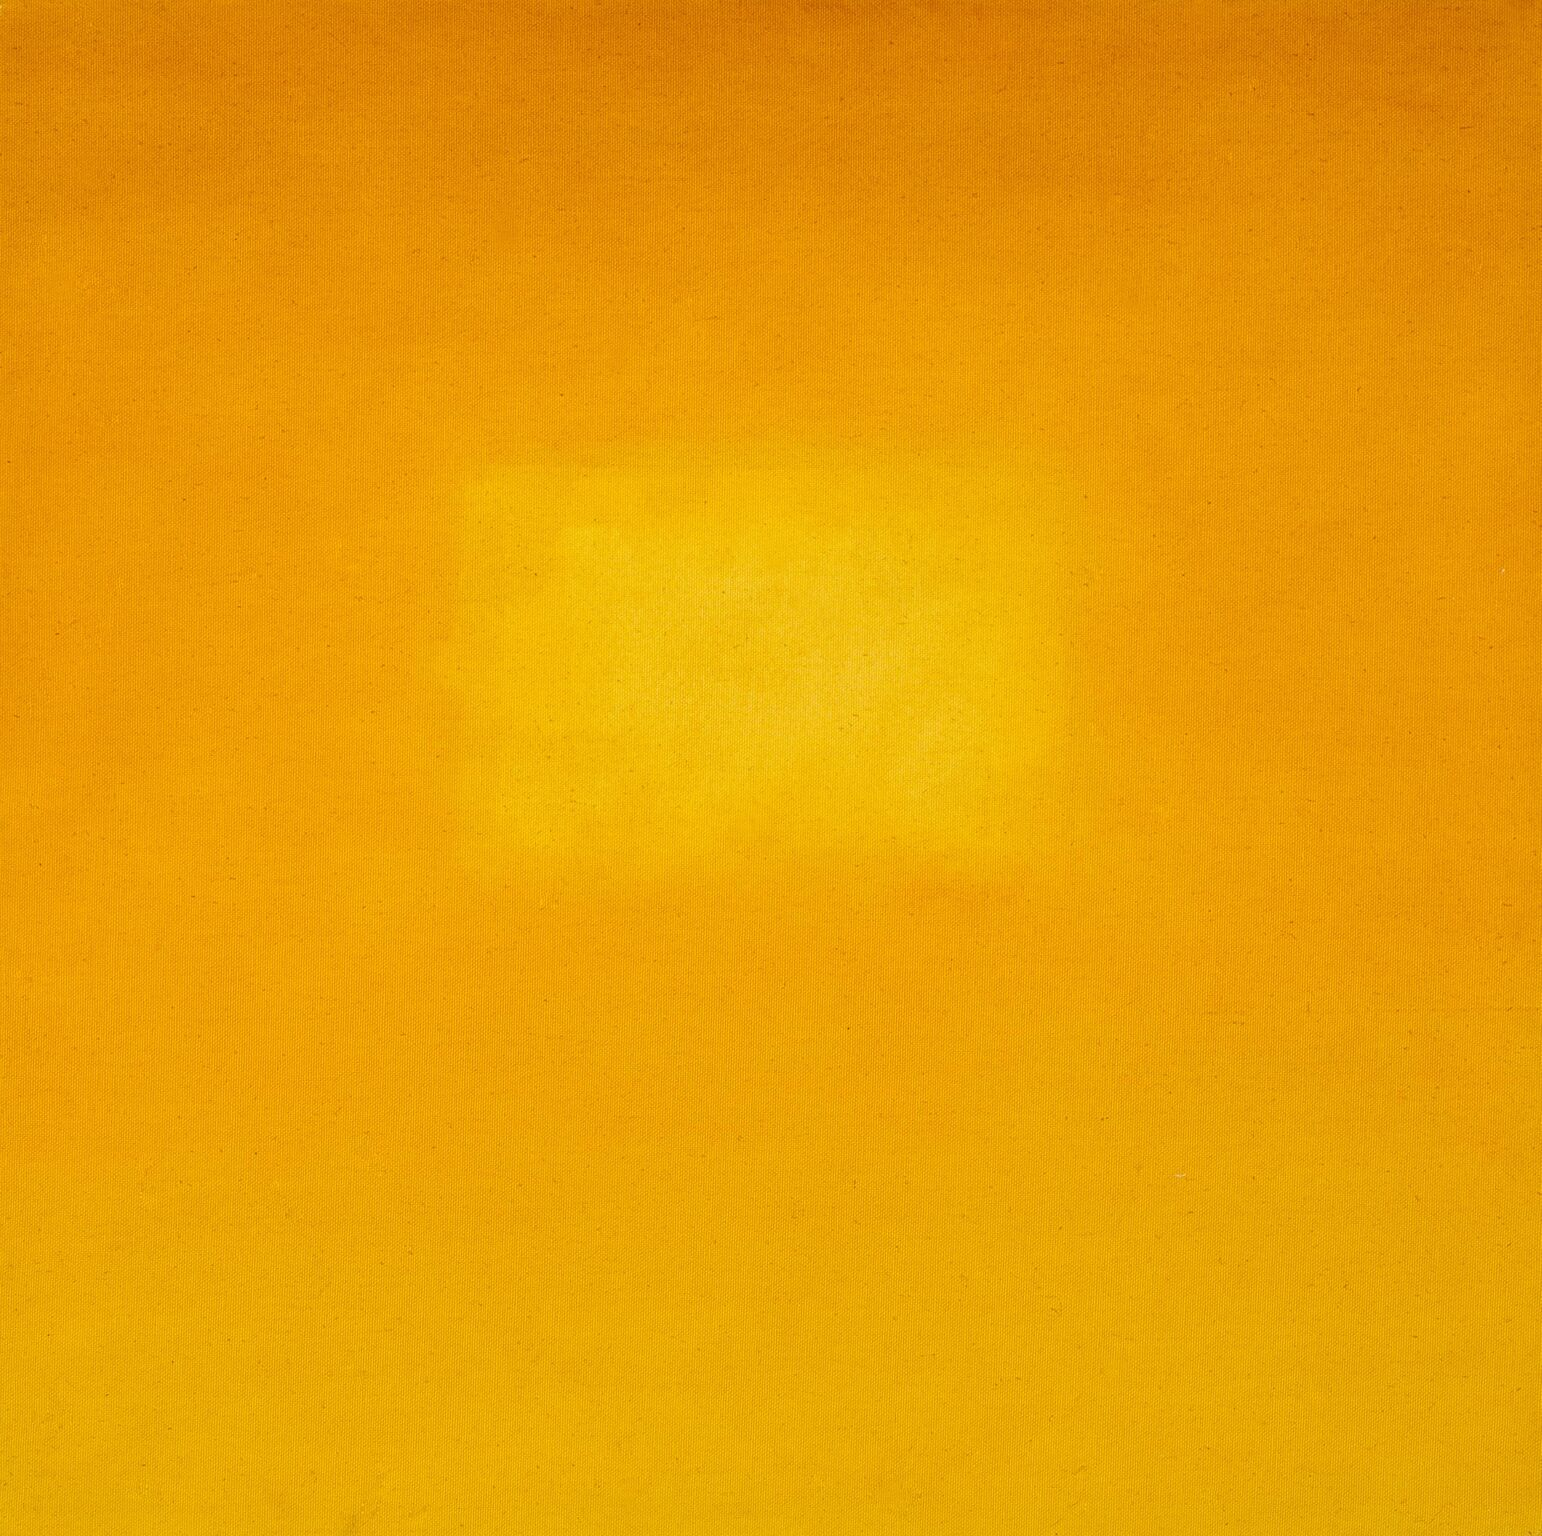 Glenn Carter ,    Amber no.5, 1994,  Oil on Canvas, 24 x 24 in.